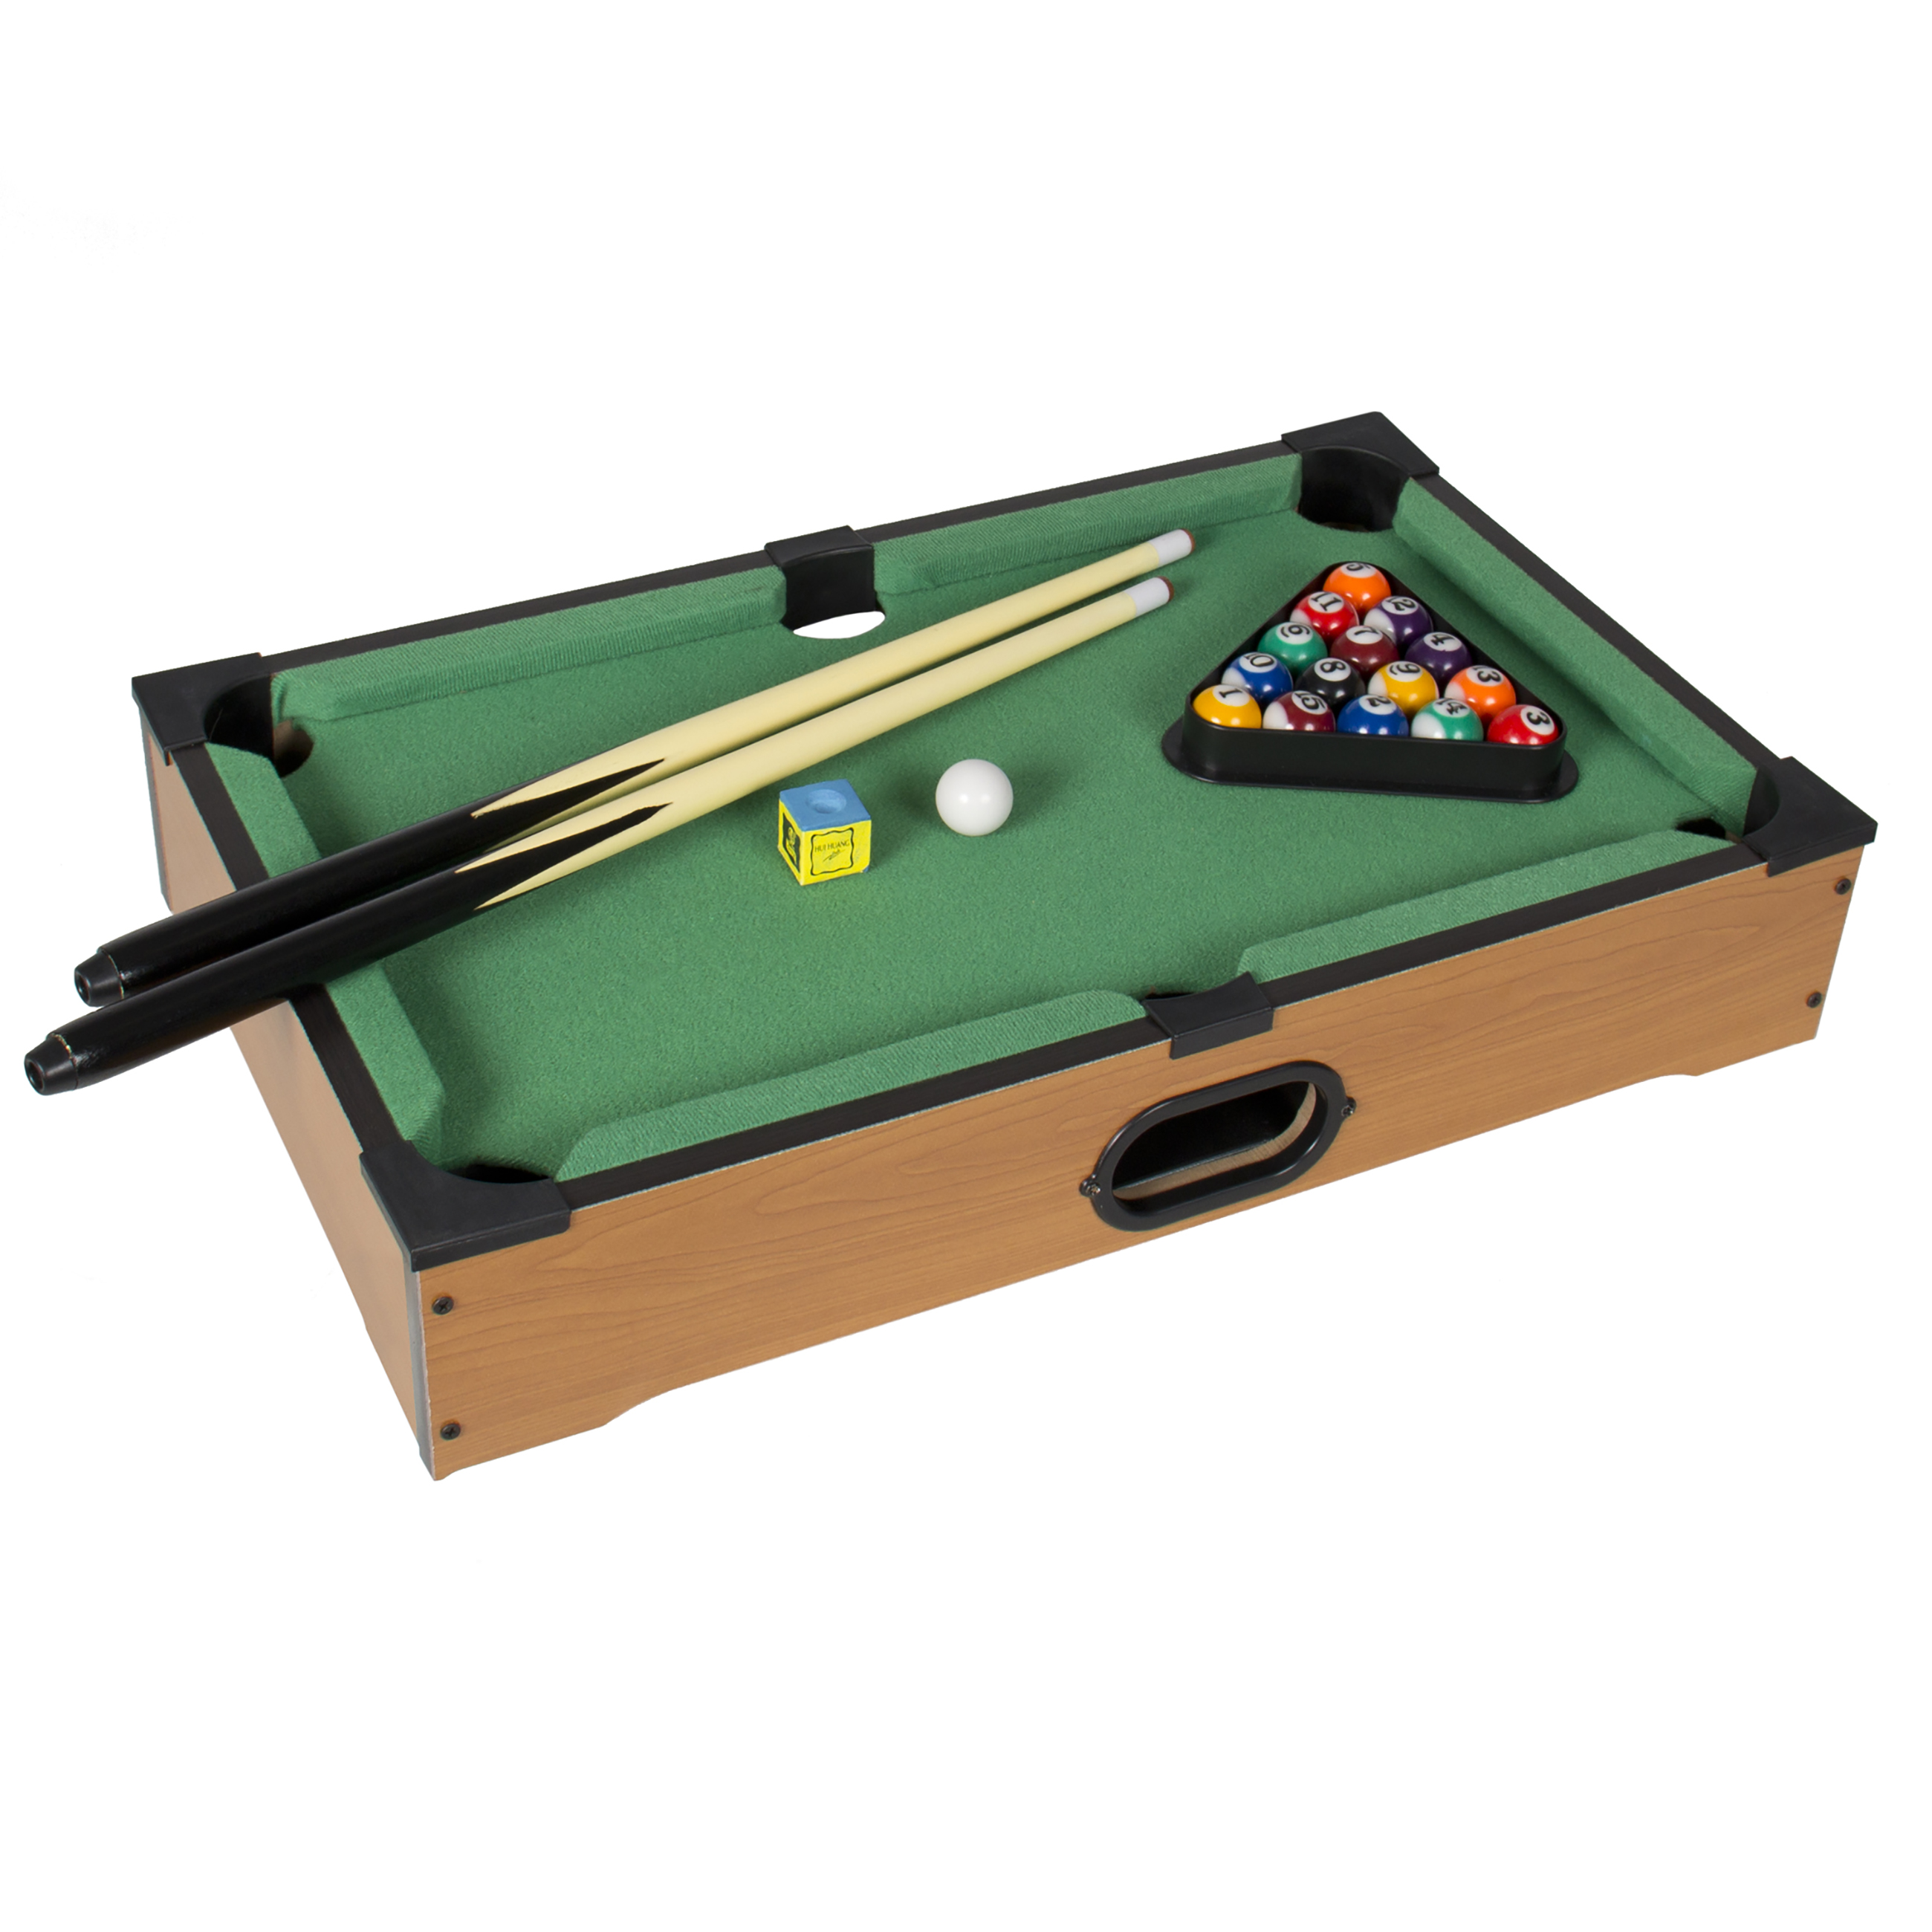 Etonnant Mini Pool Table Game Table Top With Accessories Board Games Billiards Set